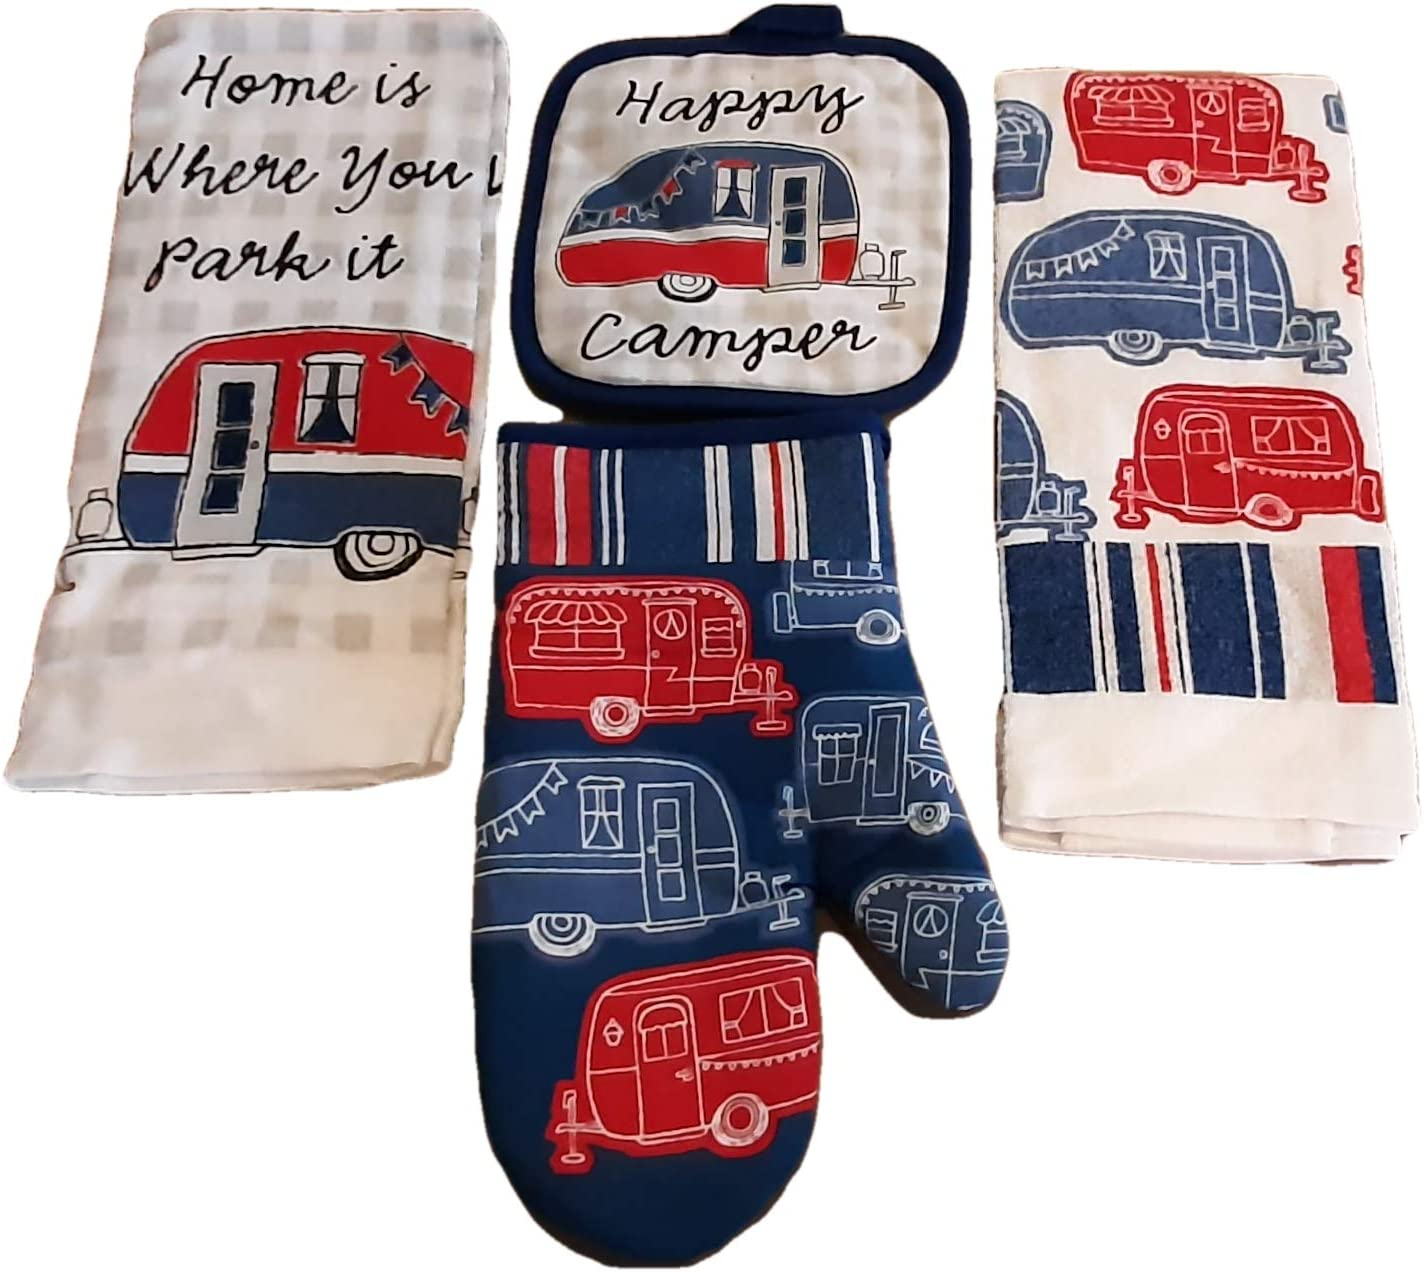 Happy Camper Dish Towel Set Home is Where You Park It! 2 Kitchen Towels, Pot Holder and Oven Mitt